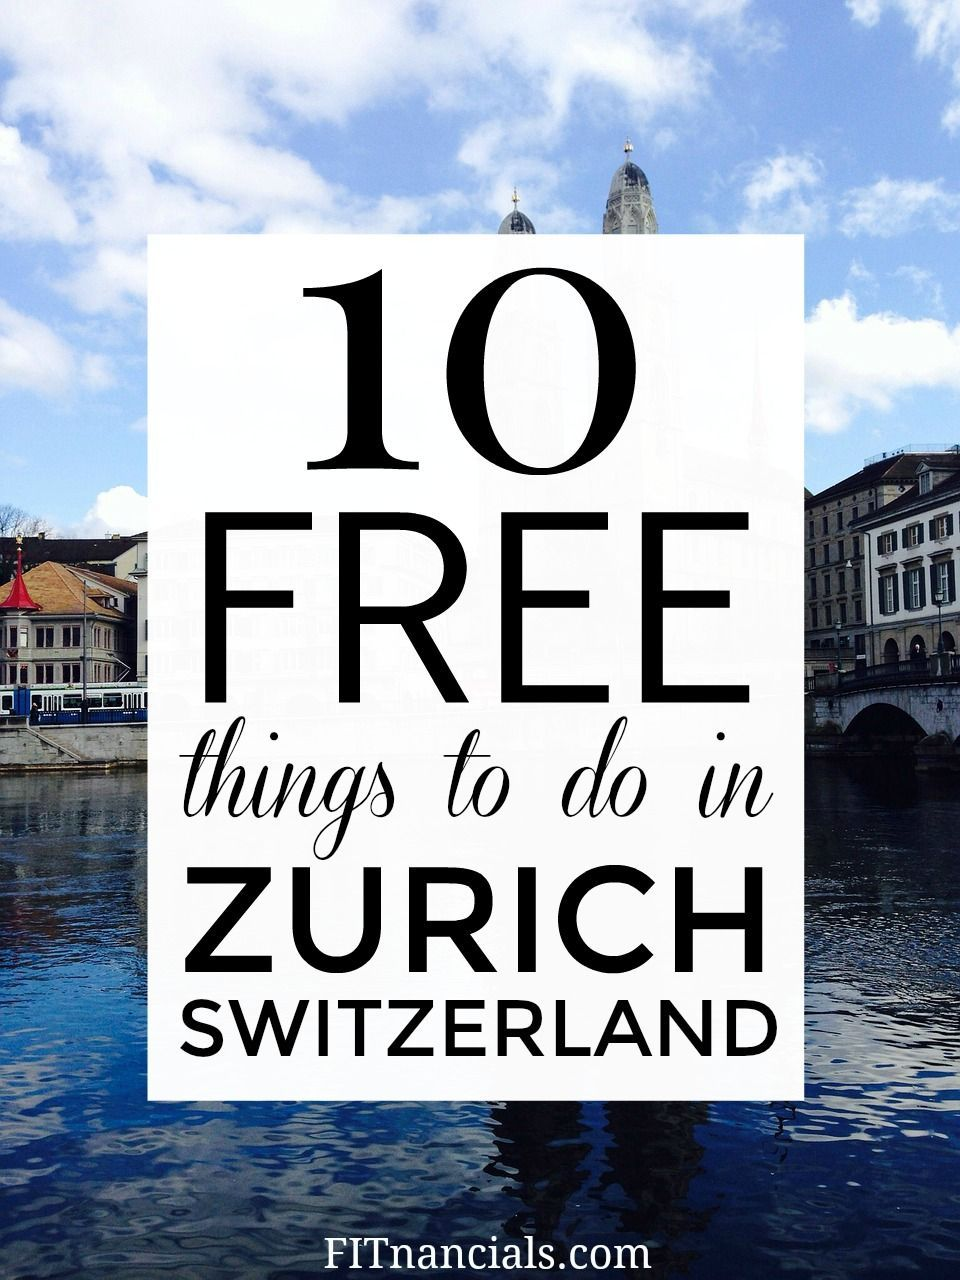 Zurich On A Budget - 10 Free Things To Do In Zurich 10 free things to do in Zurich, Switzerland! This is such a great list for anyone traveling on a budget. On A Budget - 10 Free Things To Do In Zurich 10 free things to do in Zurich, Switzerland! This is such a great list for anyone traveling on a budget.10 free things to do in Zurich, Switzerland! This is such a great list for anyone traveling on a budget.